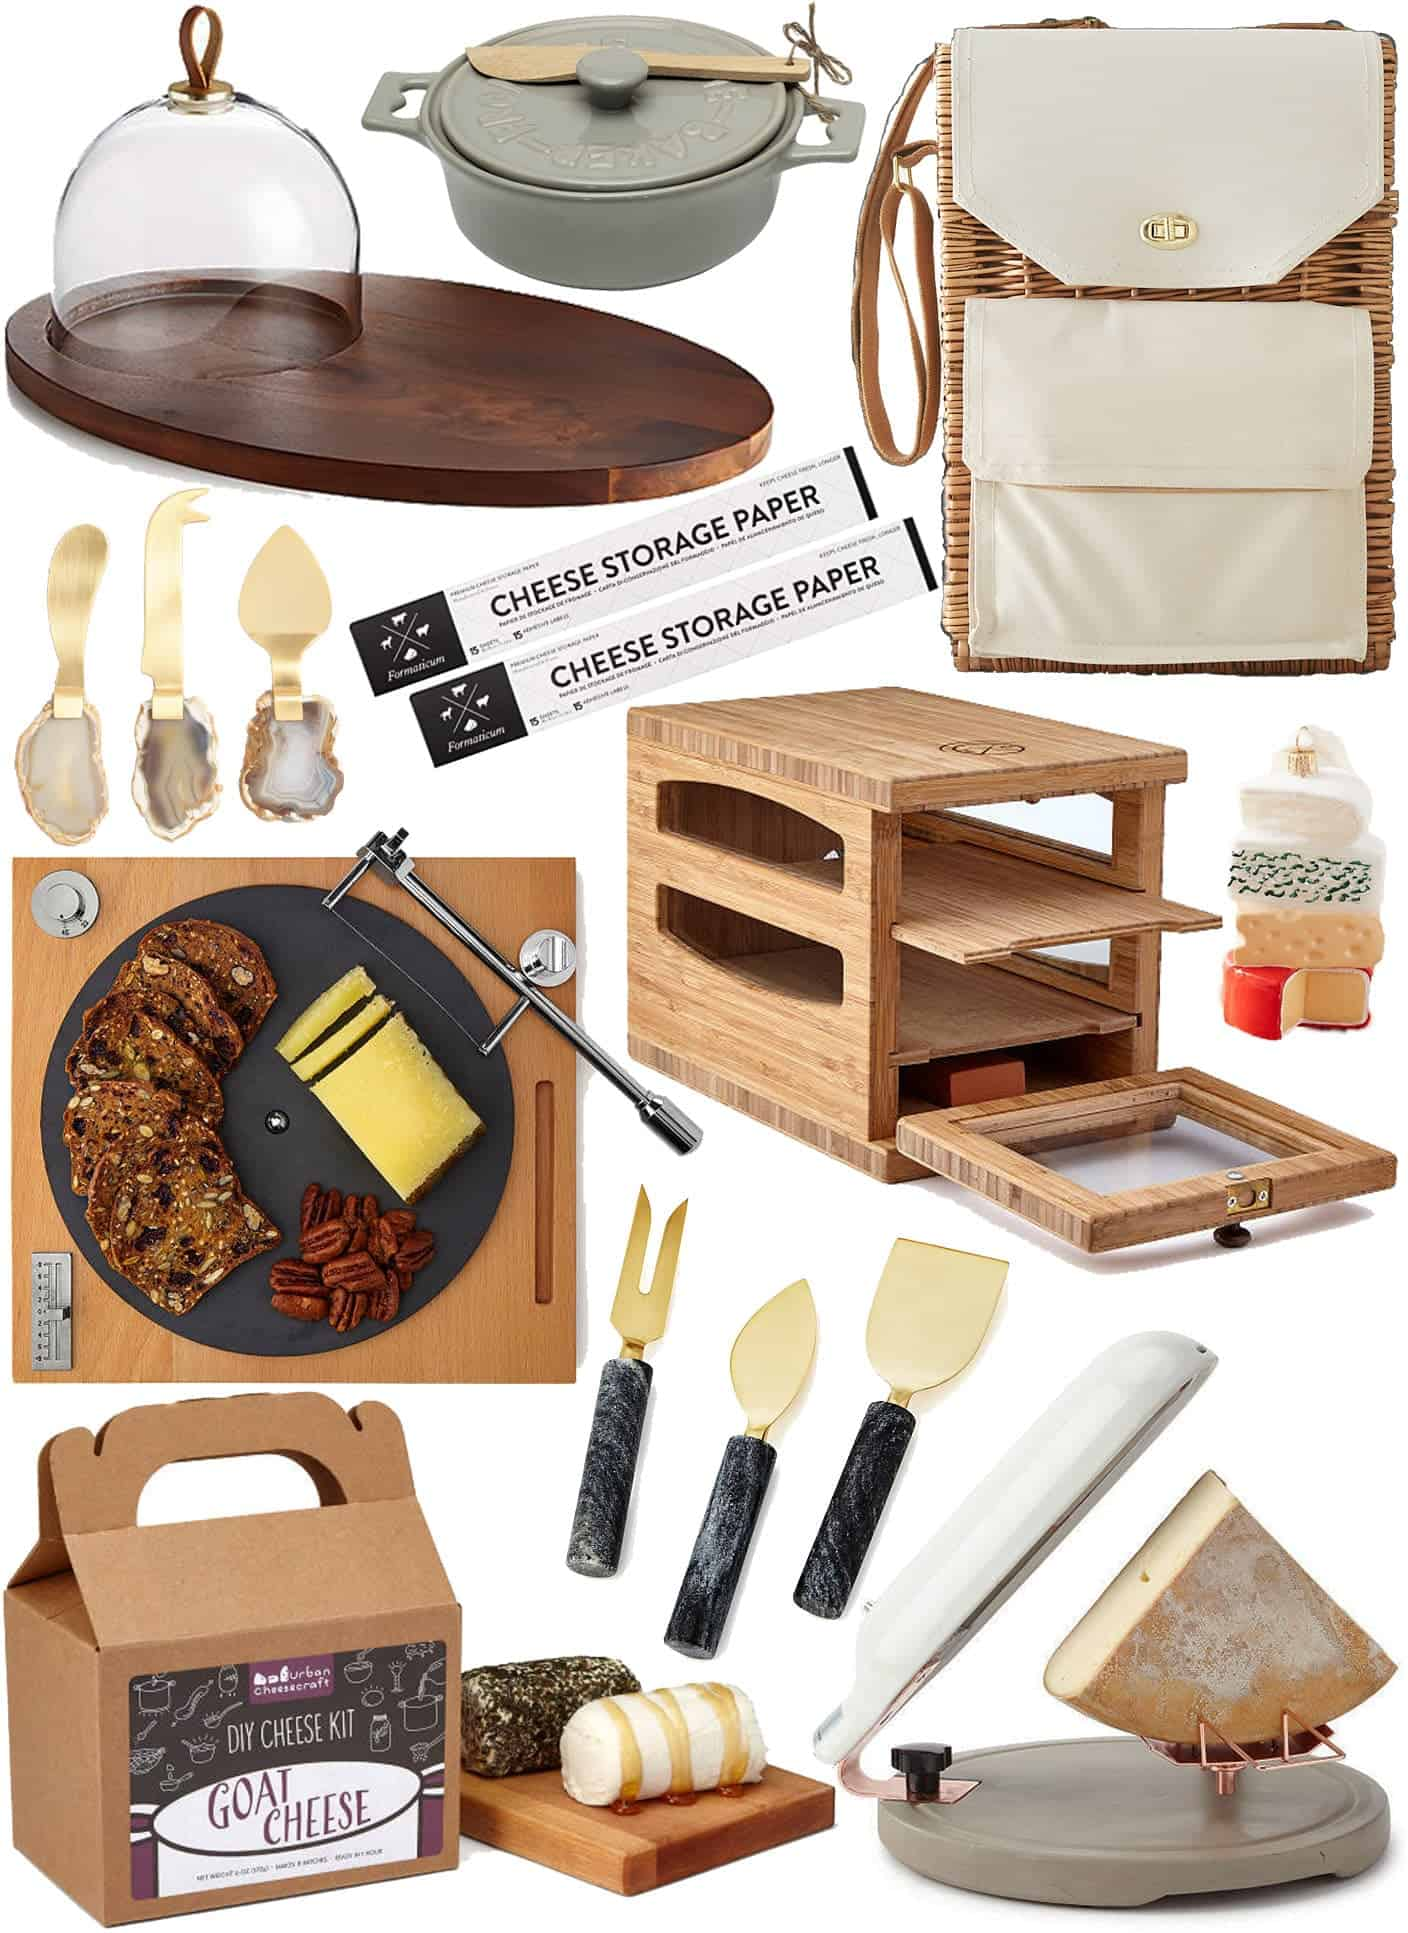 10 Gifts For The Wannabe Cheesemonger